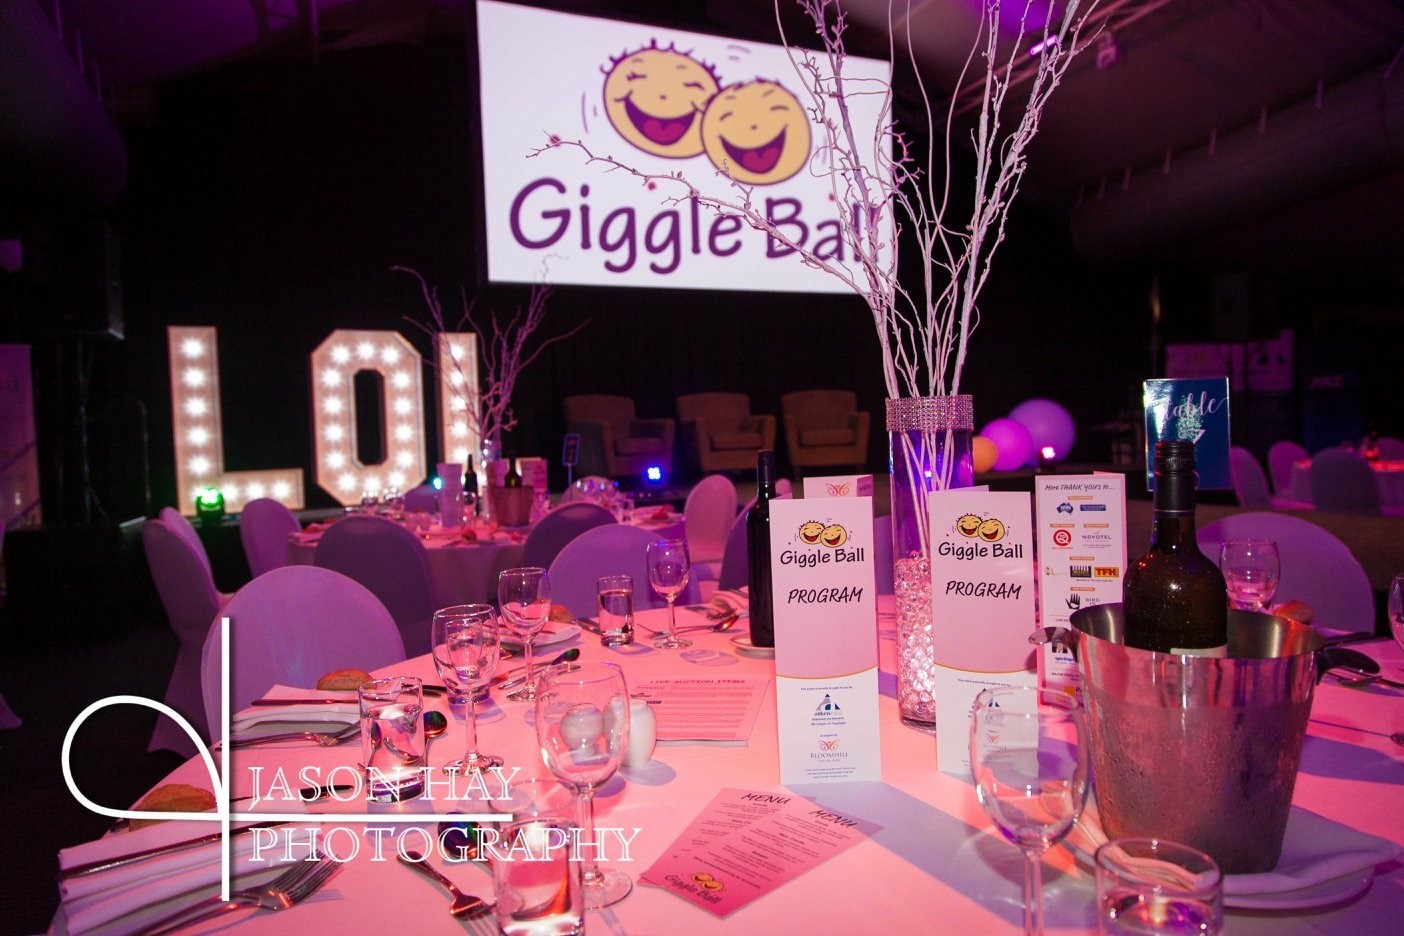 The Giggle Ball – this is a comedy charity ball that we hold approximately every 2 years. We choose a different local charity for each Giggle Ball and always ensure that the money raised remains on the Sunshine Coast. Over the years, Aitken Legal has raised more than $150,000 net of costs from this event and the beneficiaries have included Bloomhill Cancer Care, Sunshine Butterflies and the local branches of Montrose Access and Camp Quality. Keep an eye out for our next Giggle Ball!